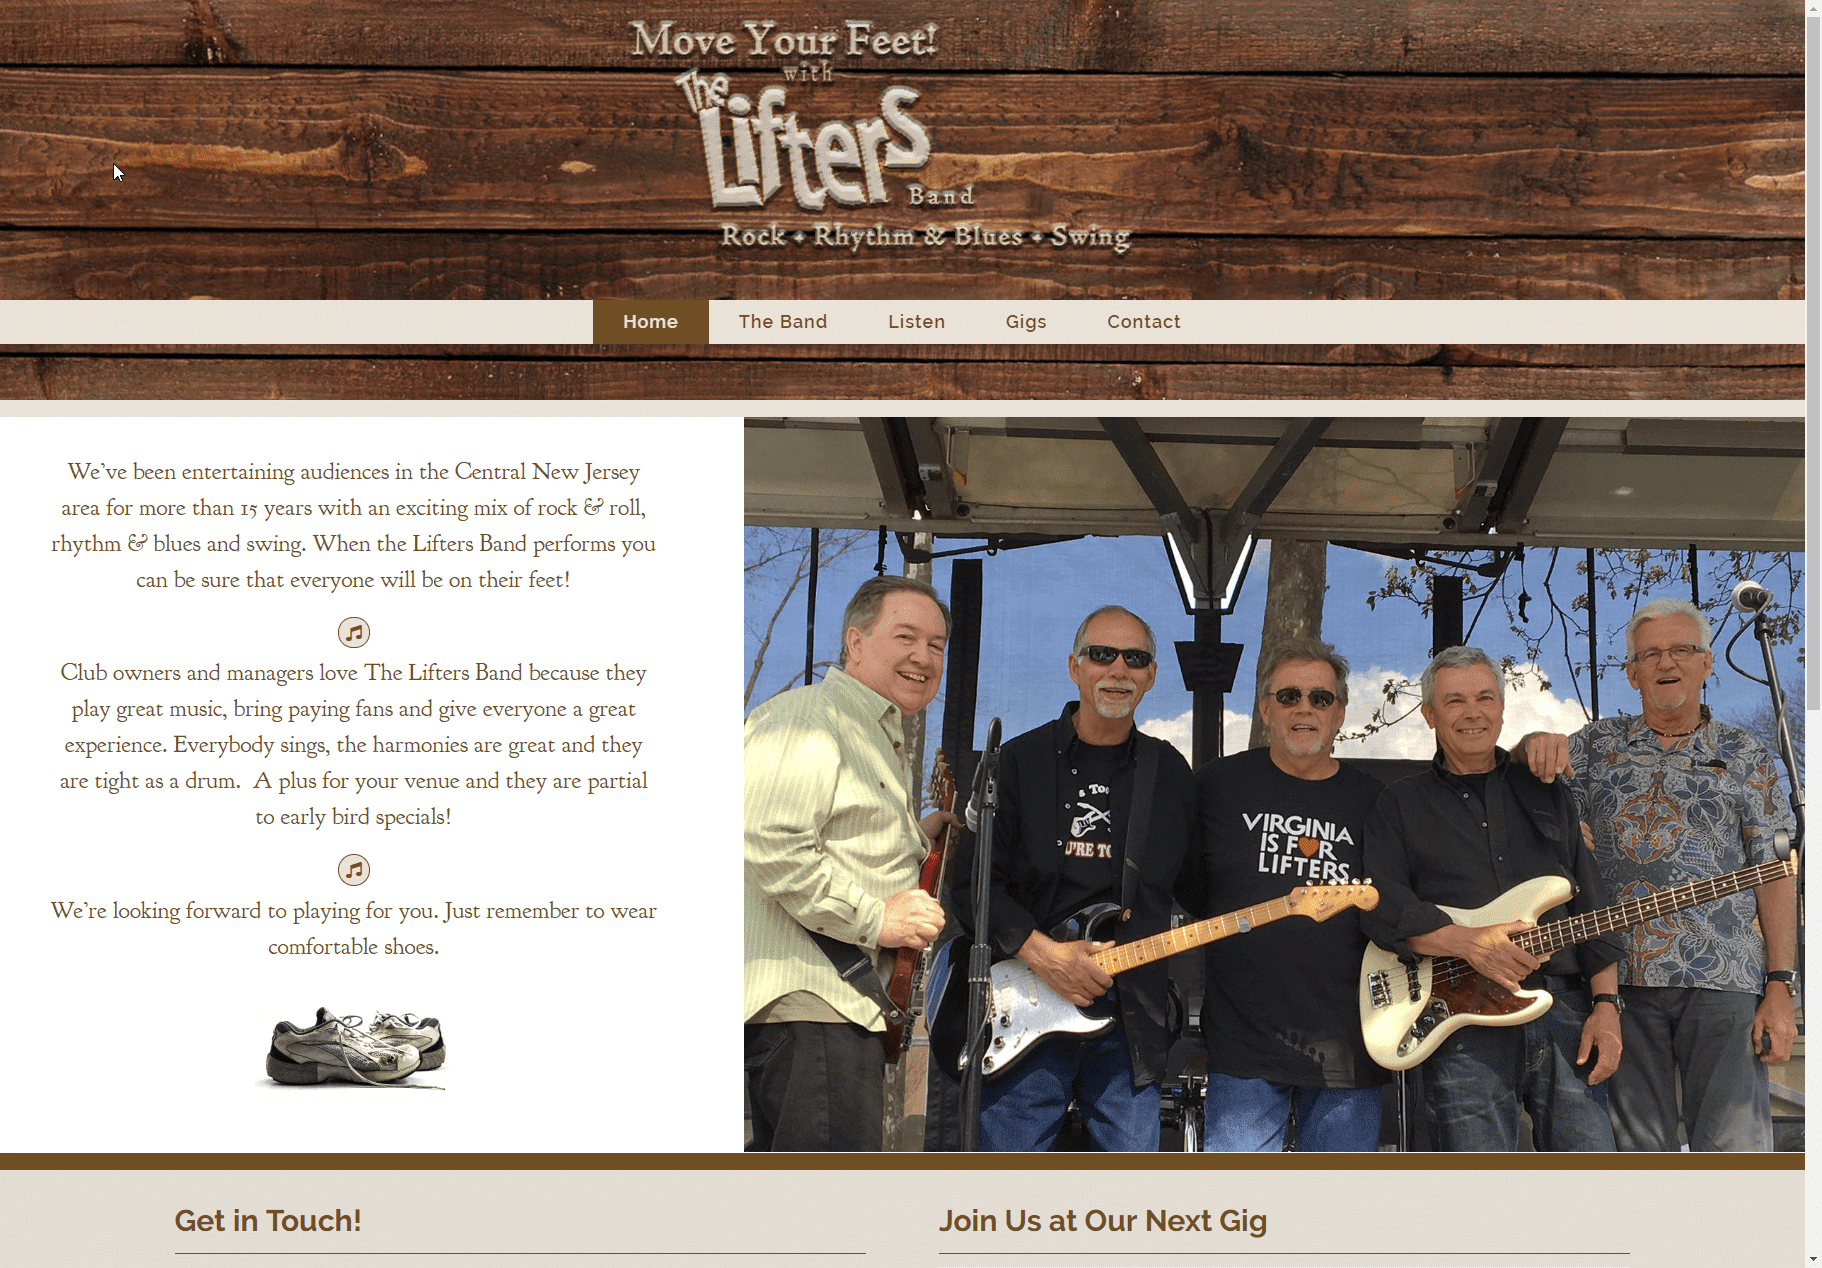 The Lifters Band